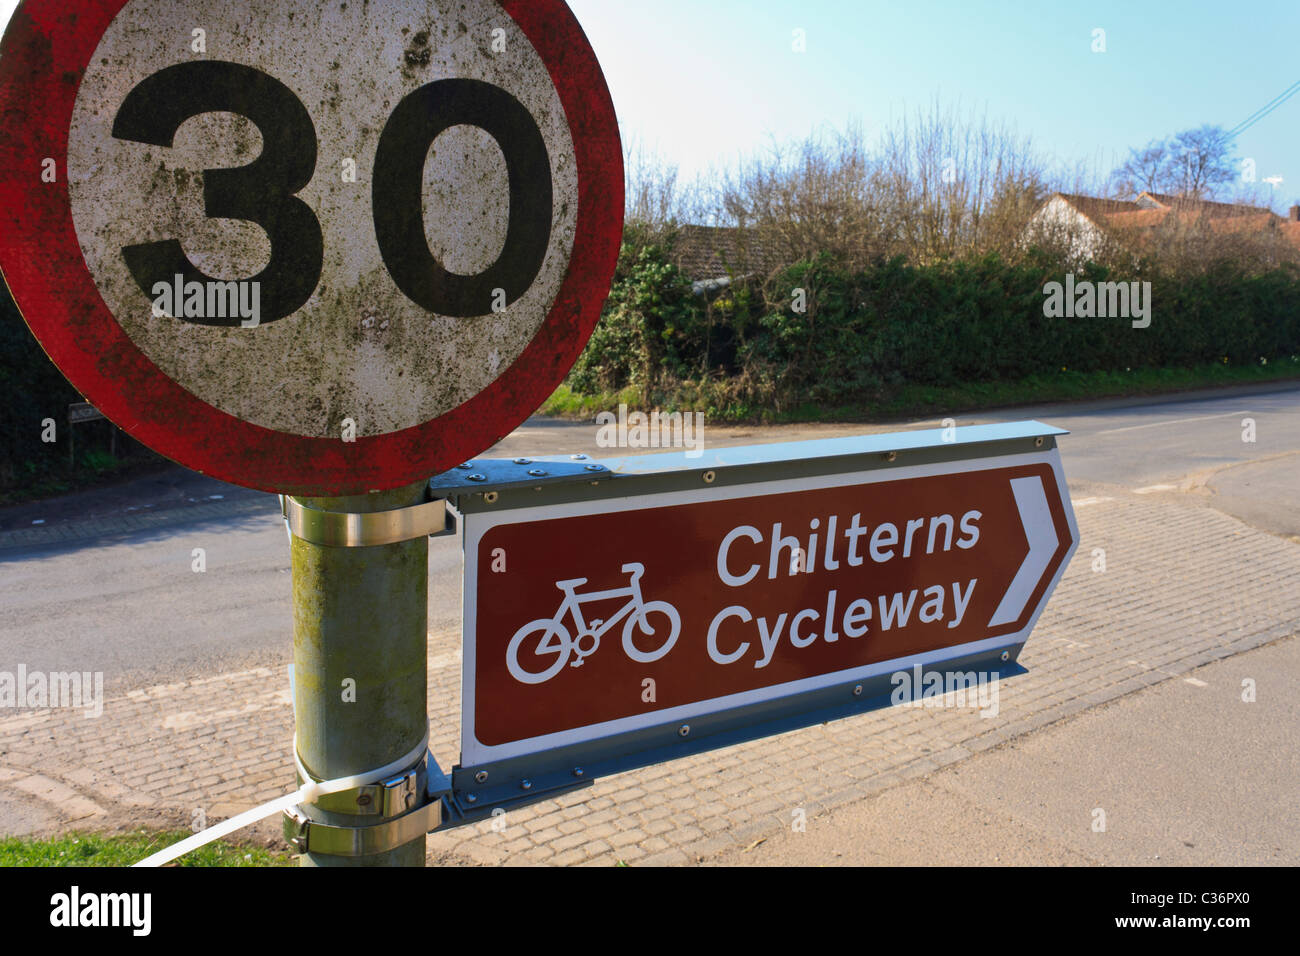 Chilterns Cycleway sign and 30 mph speed limit sign. - Stock Image